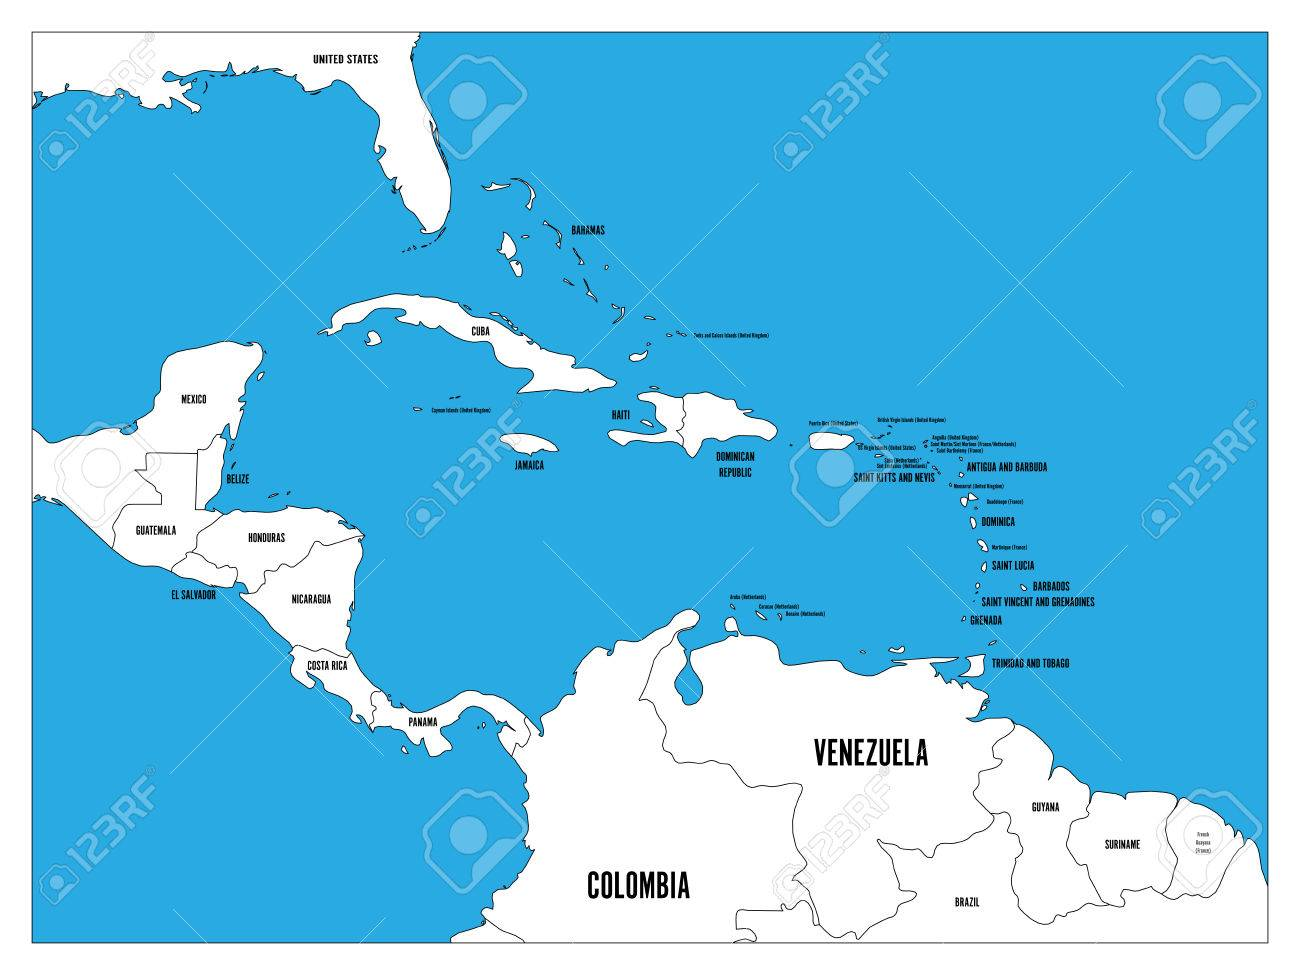 Central america and carribean states political map black outline central america and carribean states political map black outline borders with black country names labels gumiabroncs